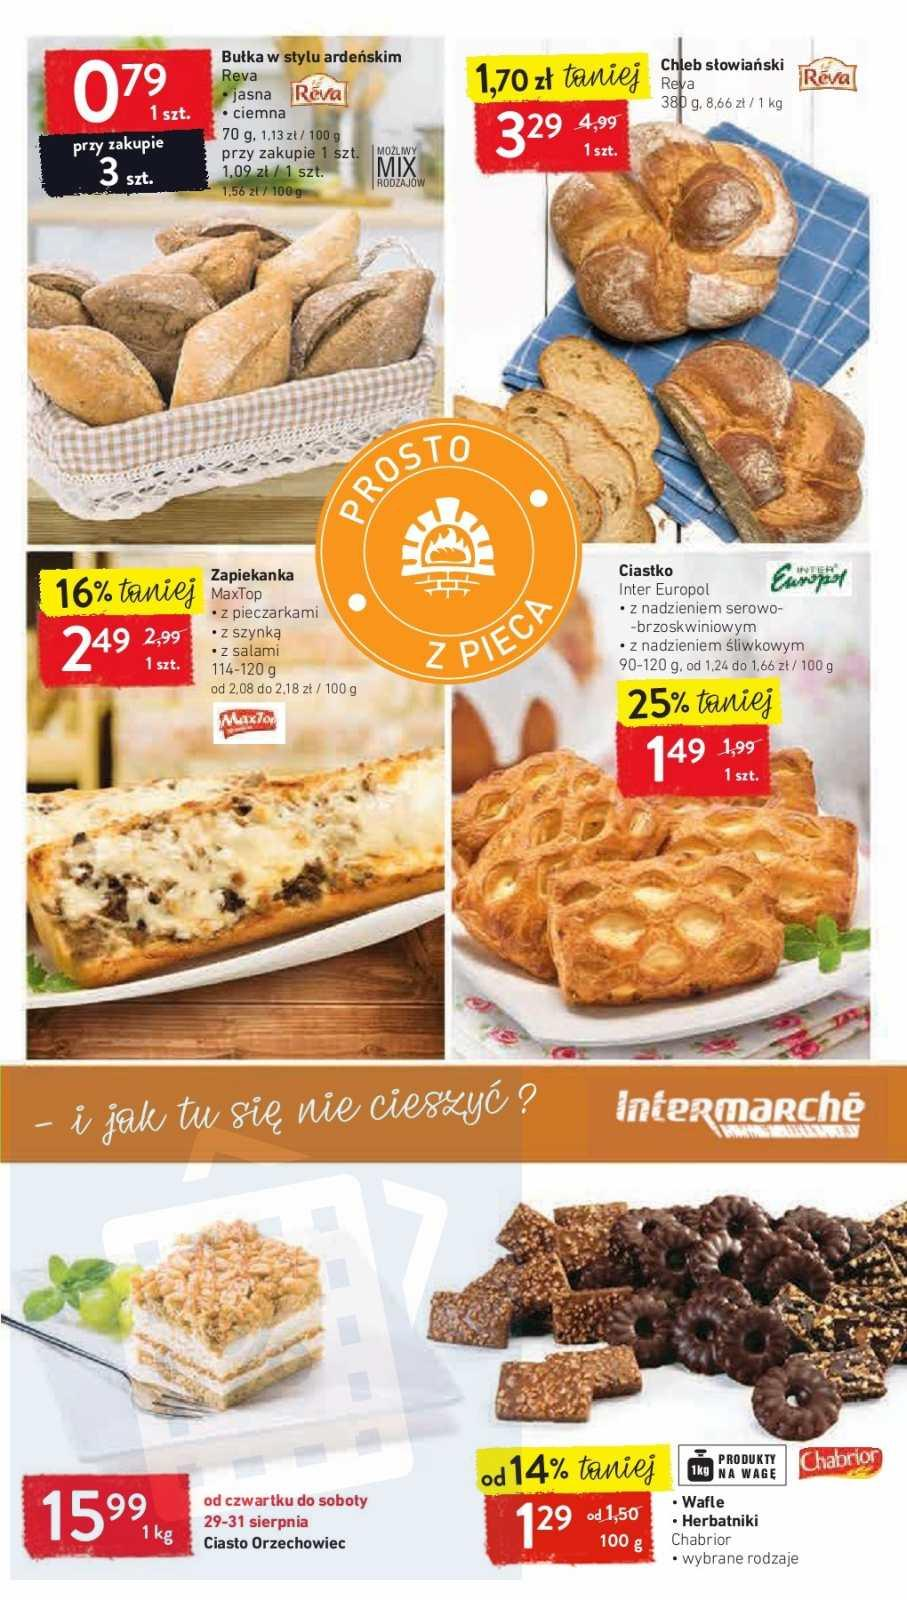 Gazetka promocyjna Intermarche do 02/09/2019 str.8